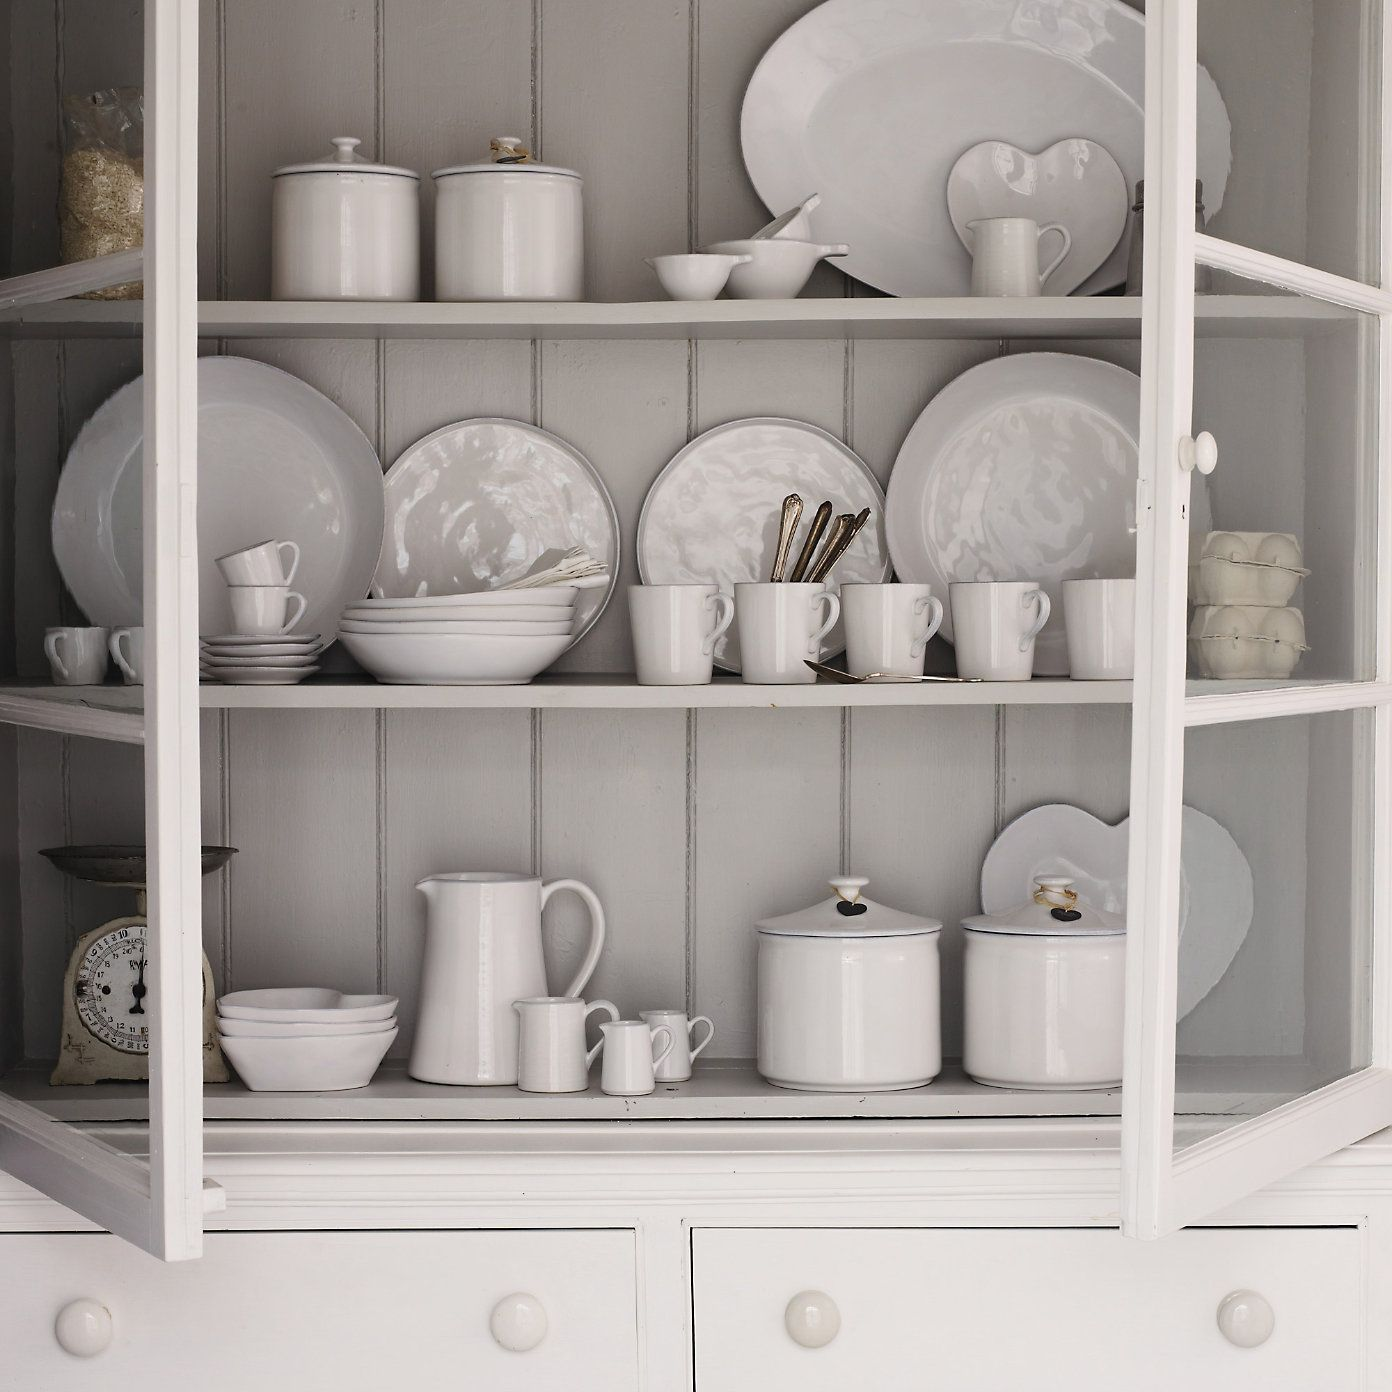 Buy Home Accessories Part - 23: Buy Home Accessories Tableware Stoneware Coffee Cups U0026 Saucers With Jug  From The White Company